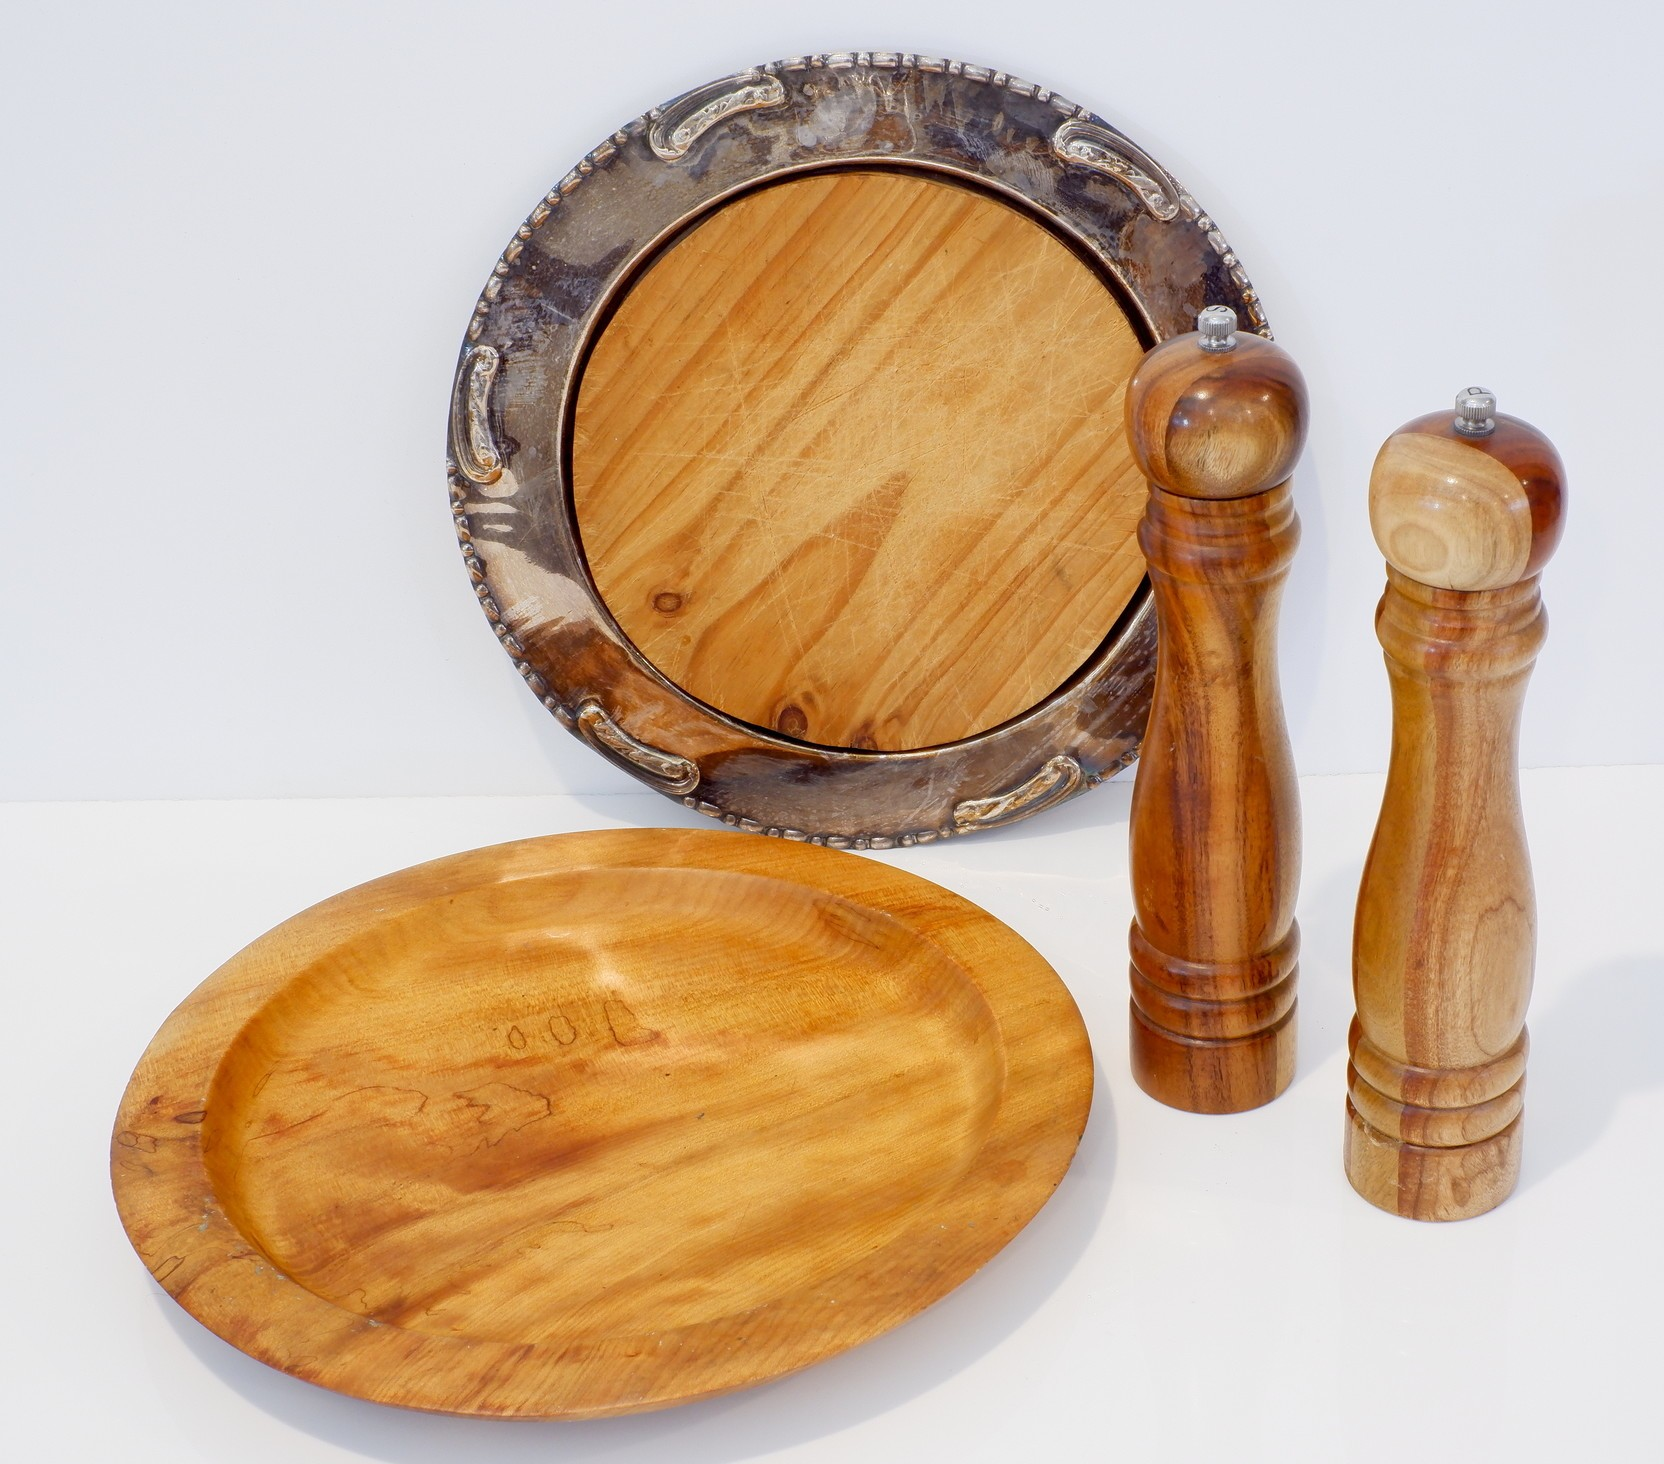 'Various Artisan Wood Items'